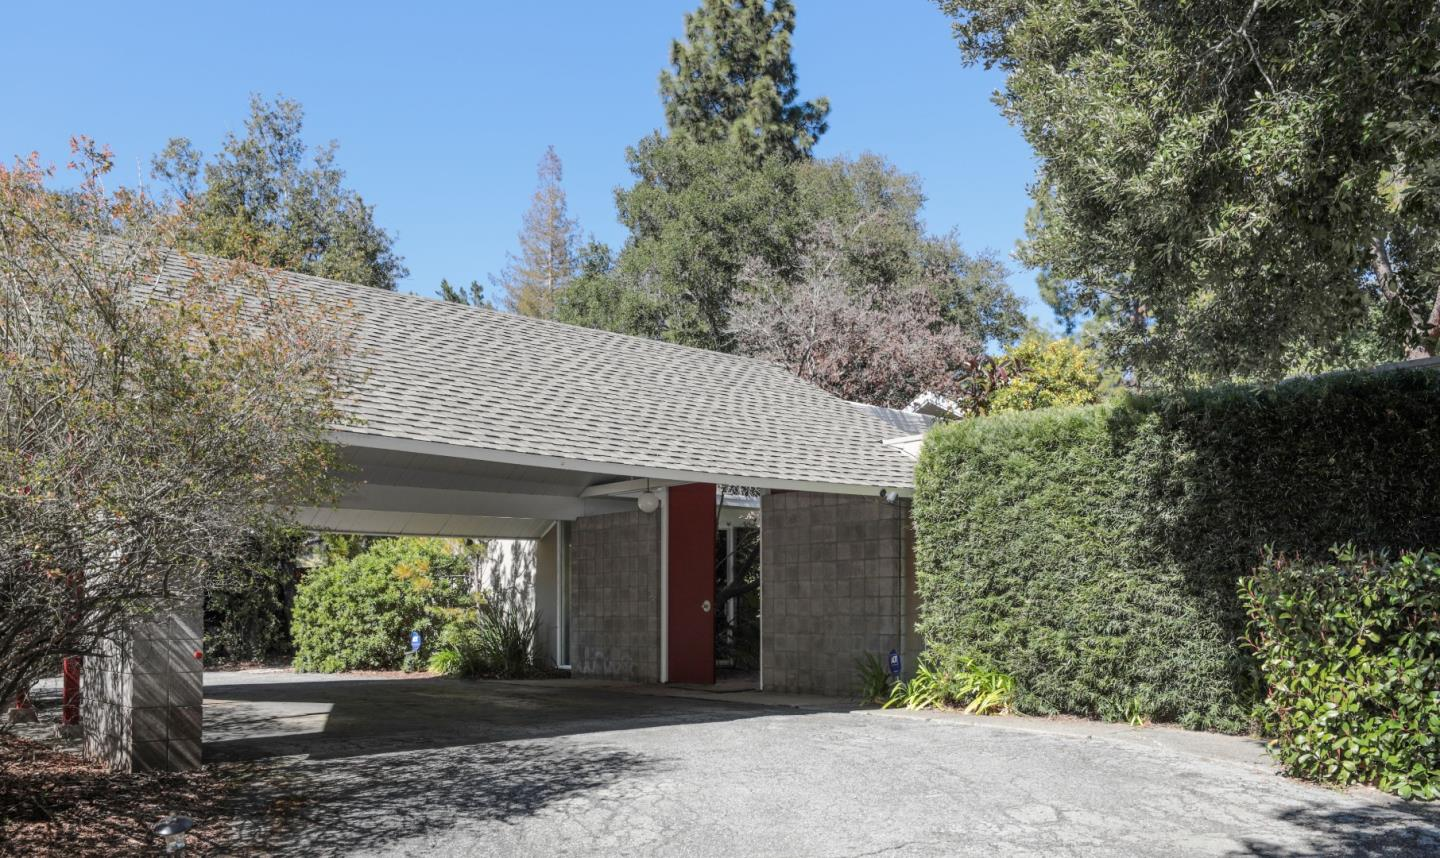 Single Family Home for Sale at 834 Cedro Way 834 Cedro Way Stanford, California 94305 United States